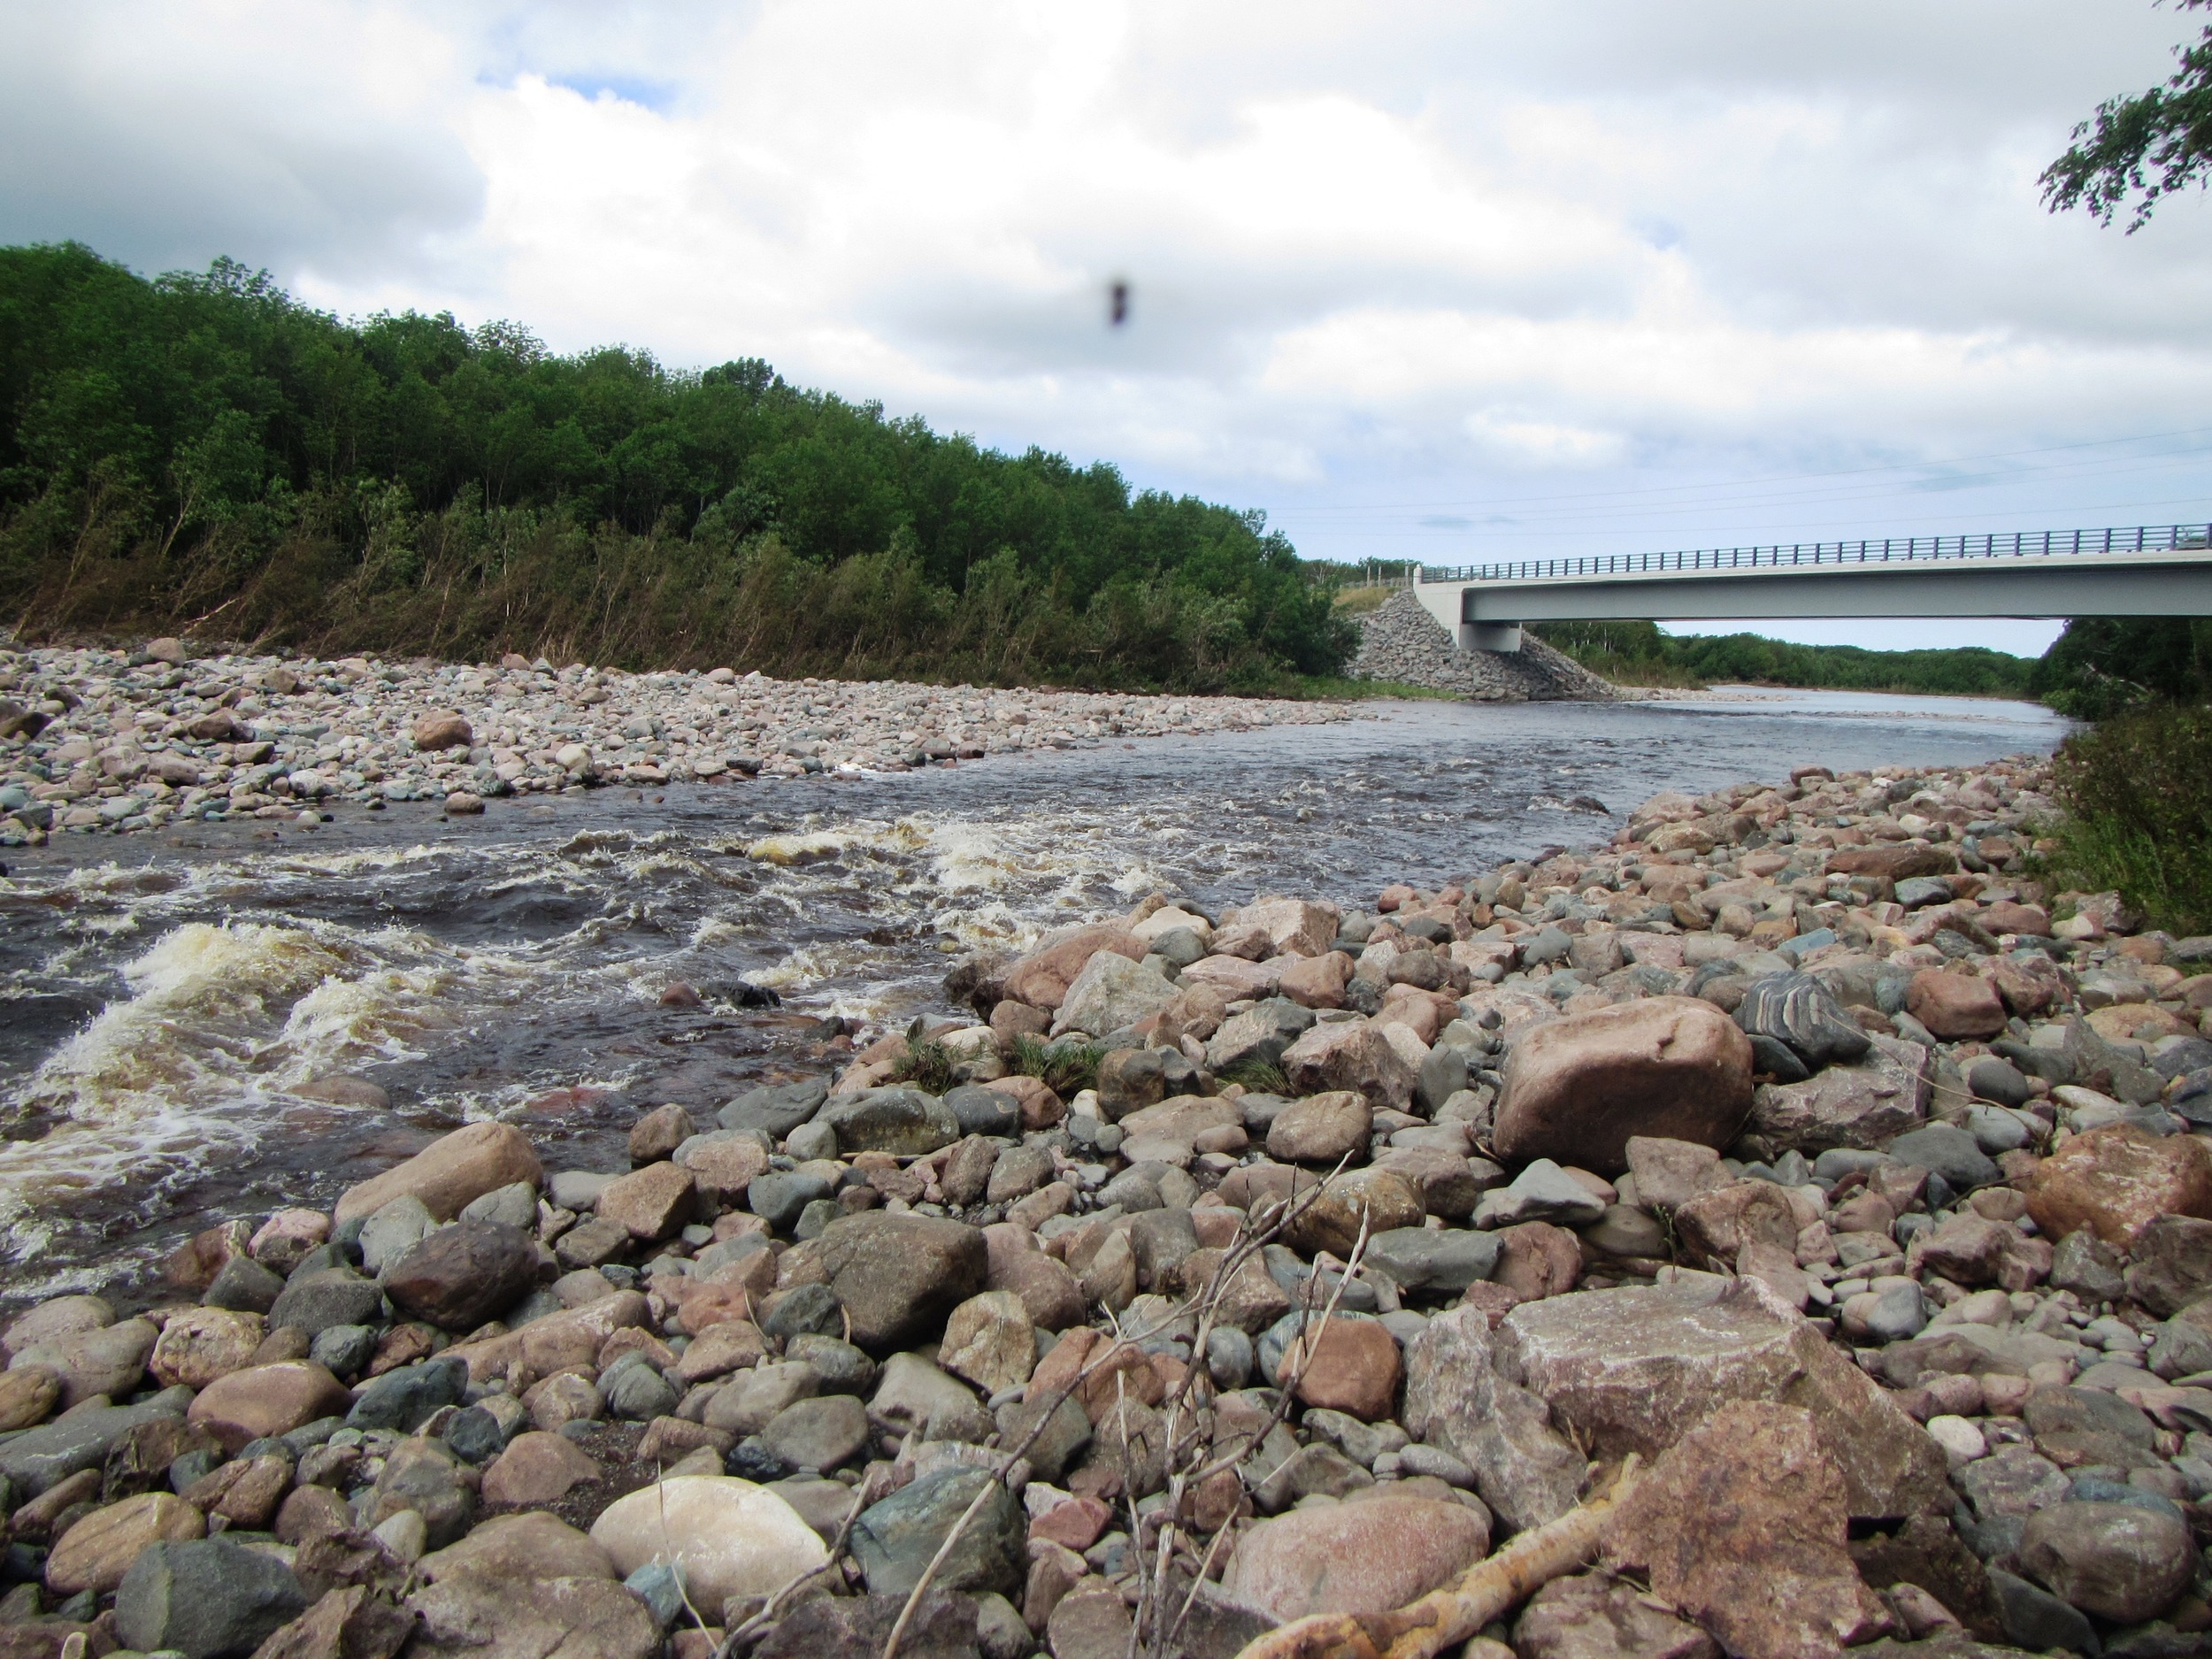 Work site above the Cabot Trail bridge (looking downstream) after the August, 2015 flood event. The flooding further narrowed the channel here (the instream structures had already contributed to the narrowing and deepening of the channel in this site) and led to the formation of another new pool.